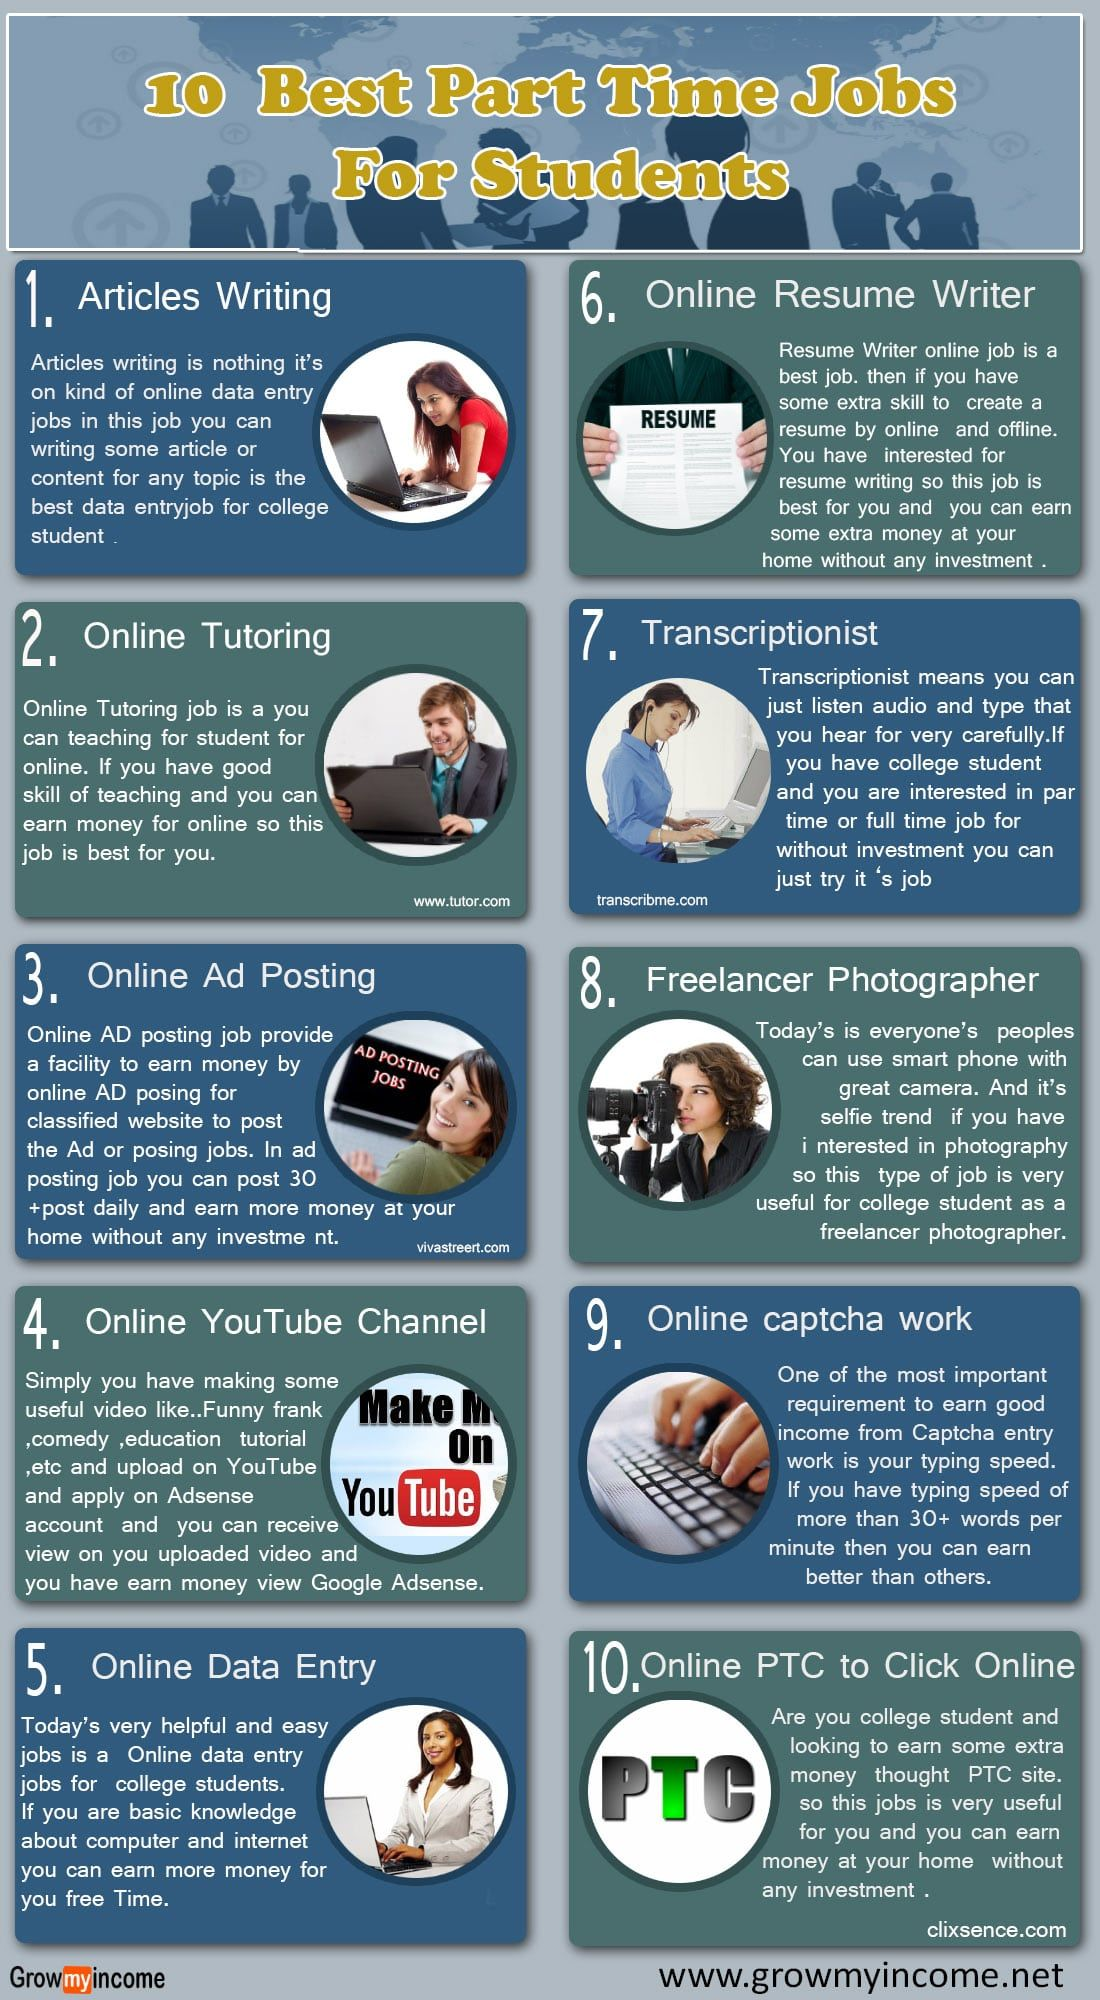 10 best part time jobs for students student jobs best